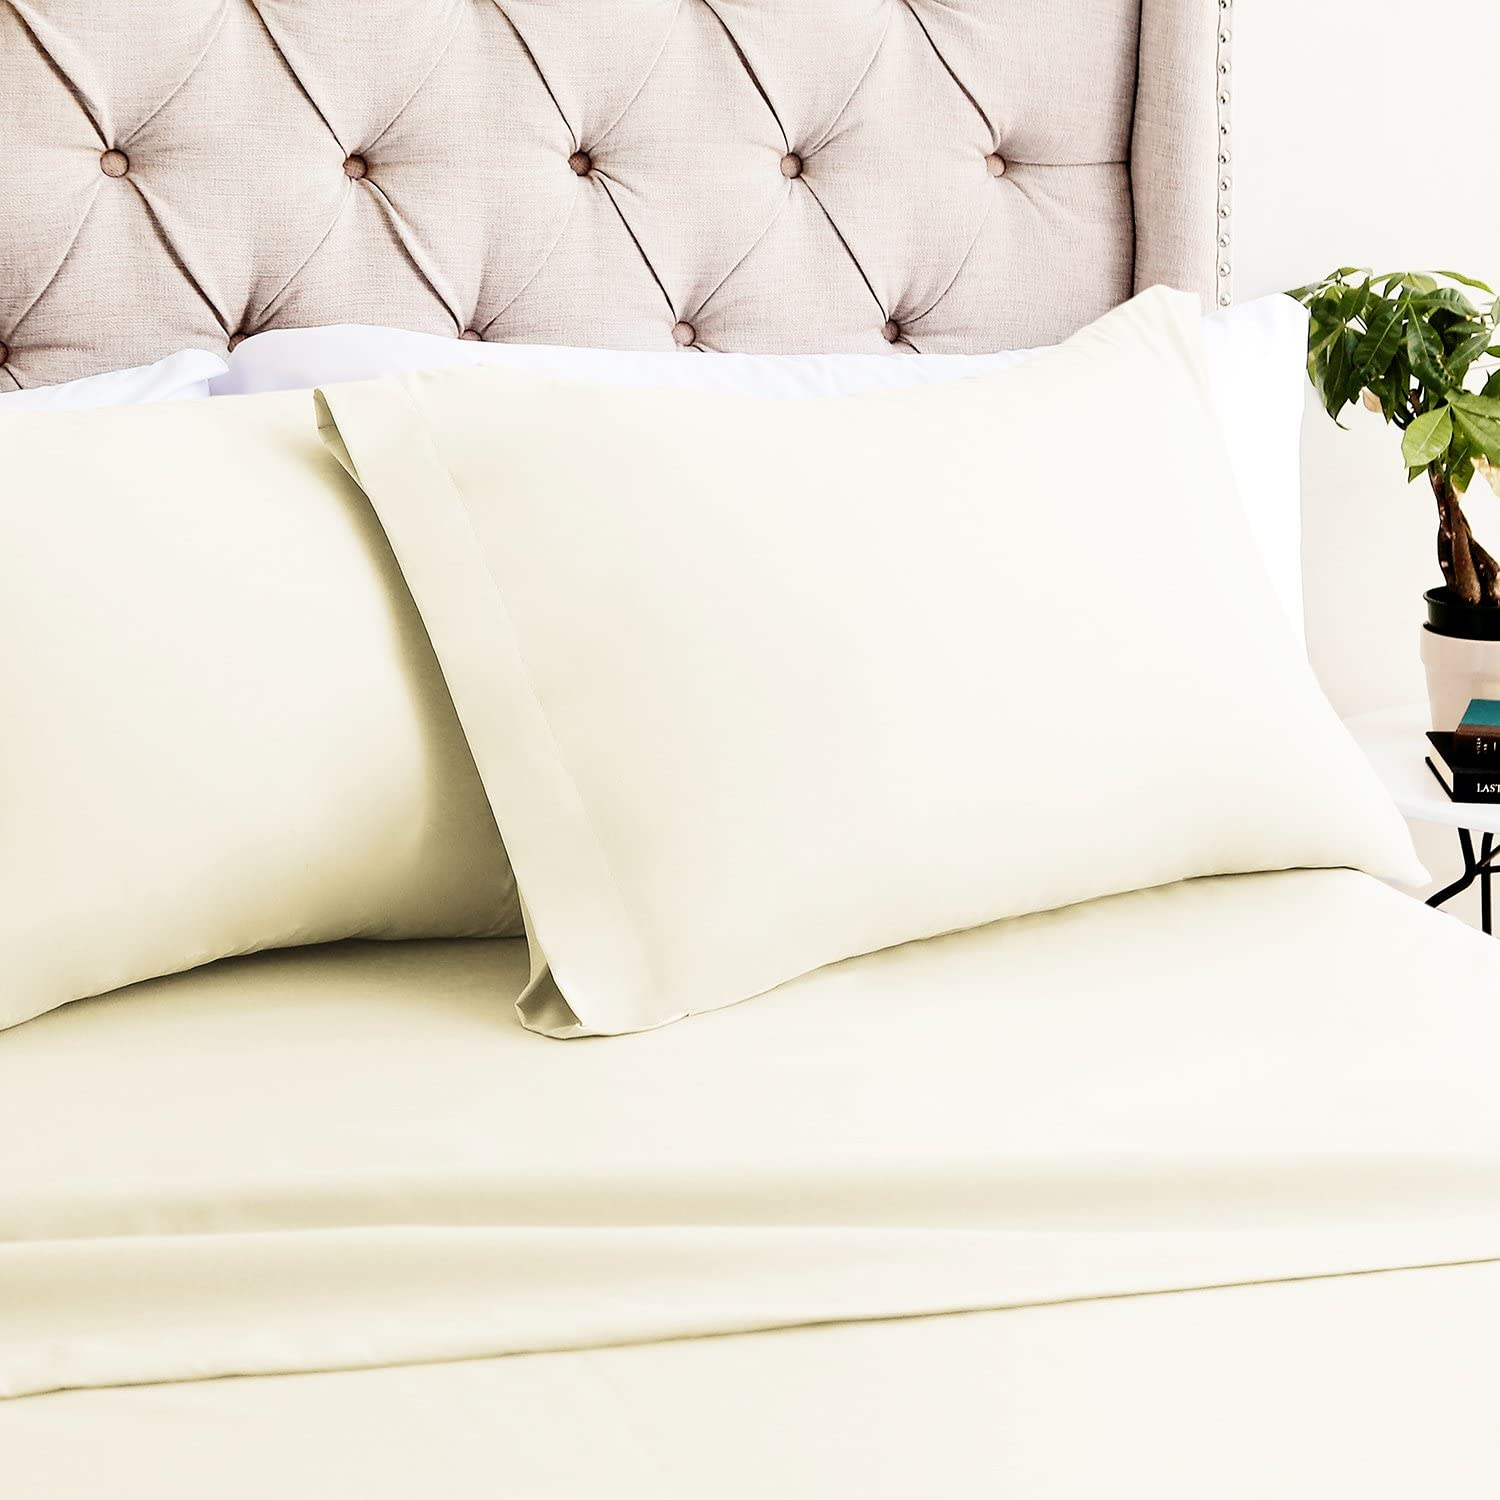 Luxor Linens Bamboo New Free Sacramento Mall Shipping Queen Sheets - 1 2 4pc Pillowcases Fit Set